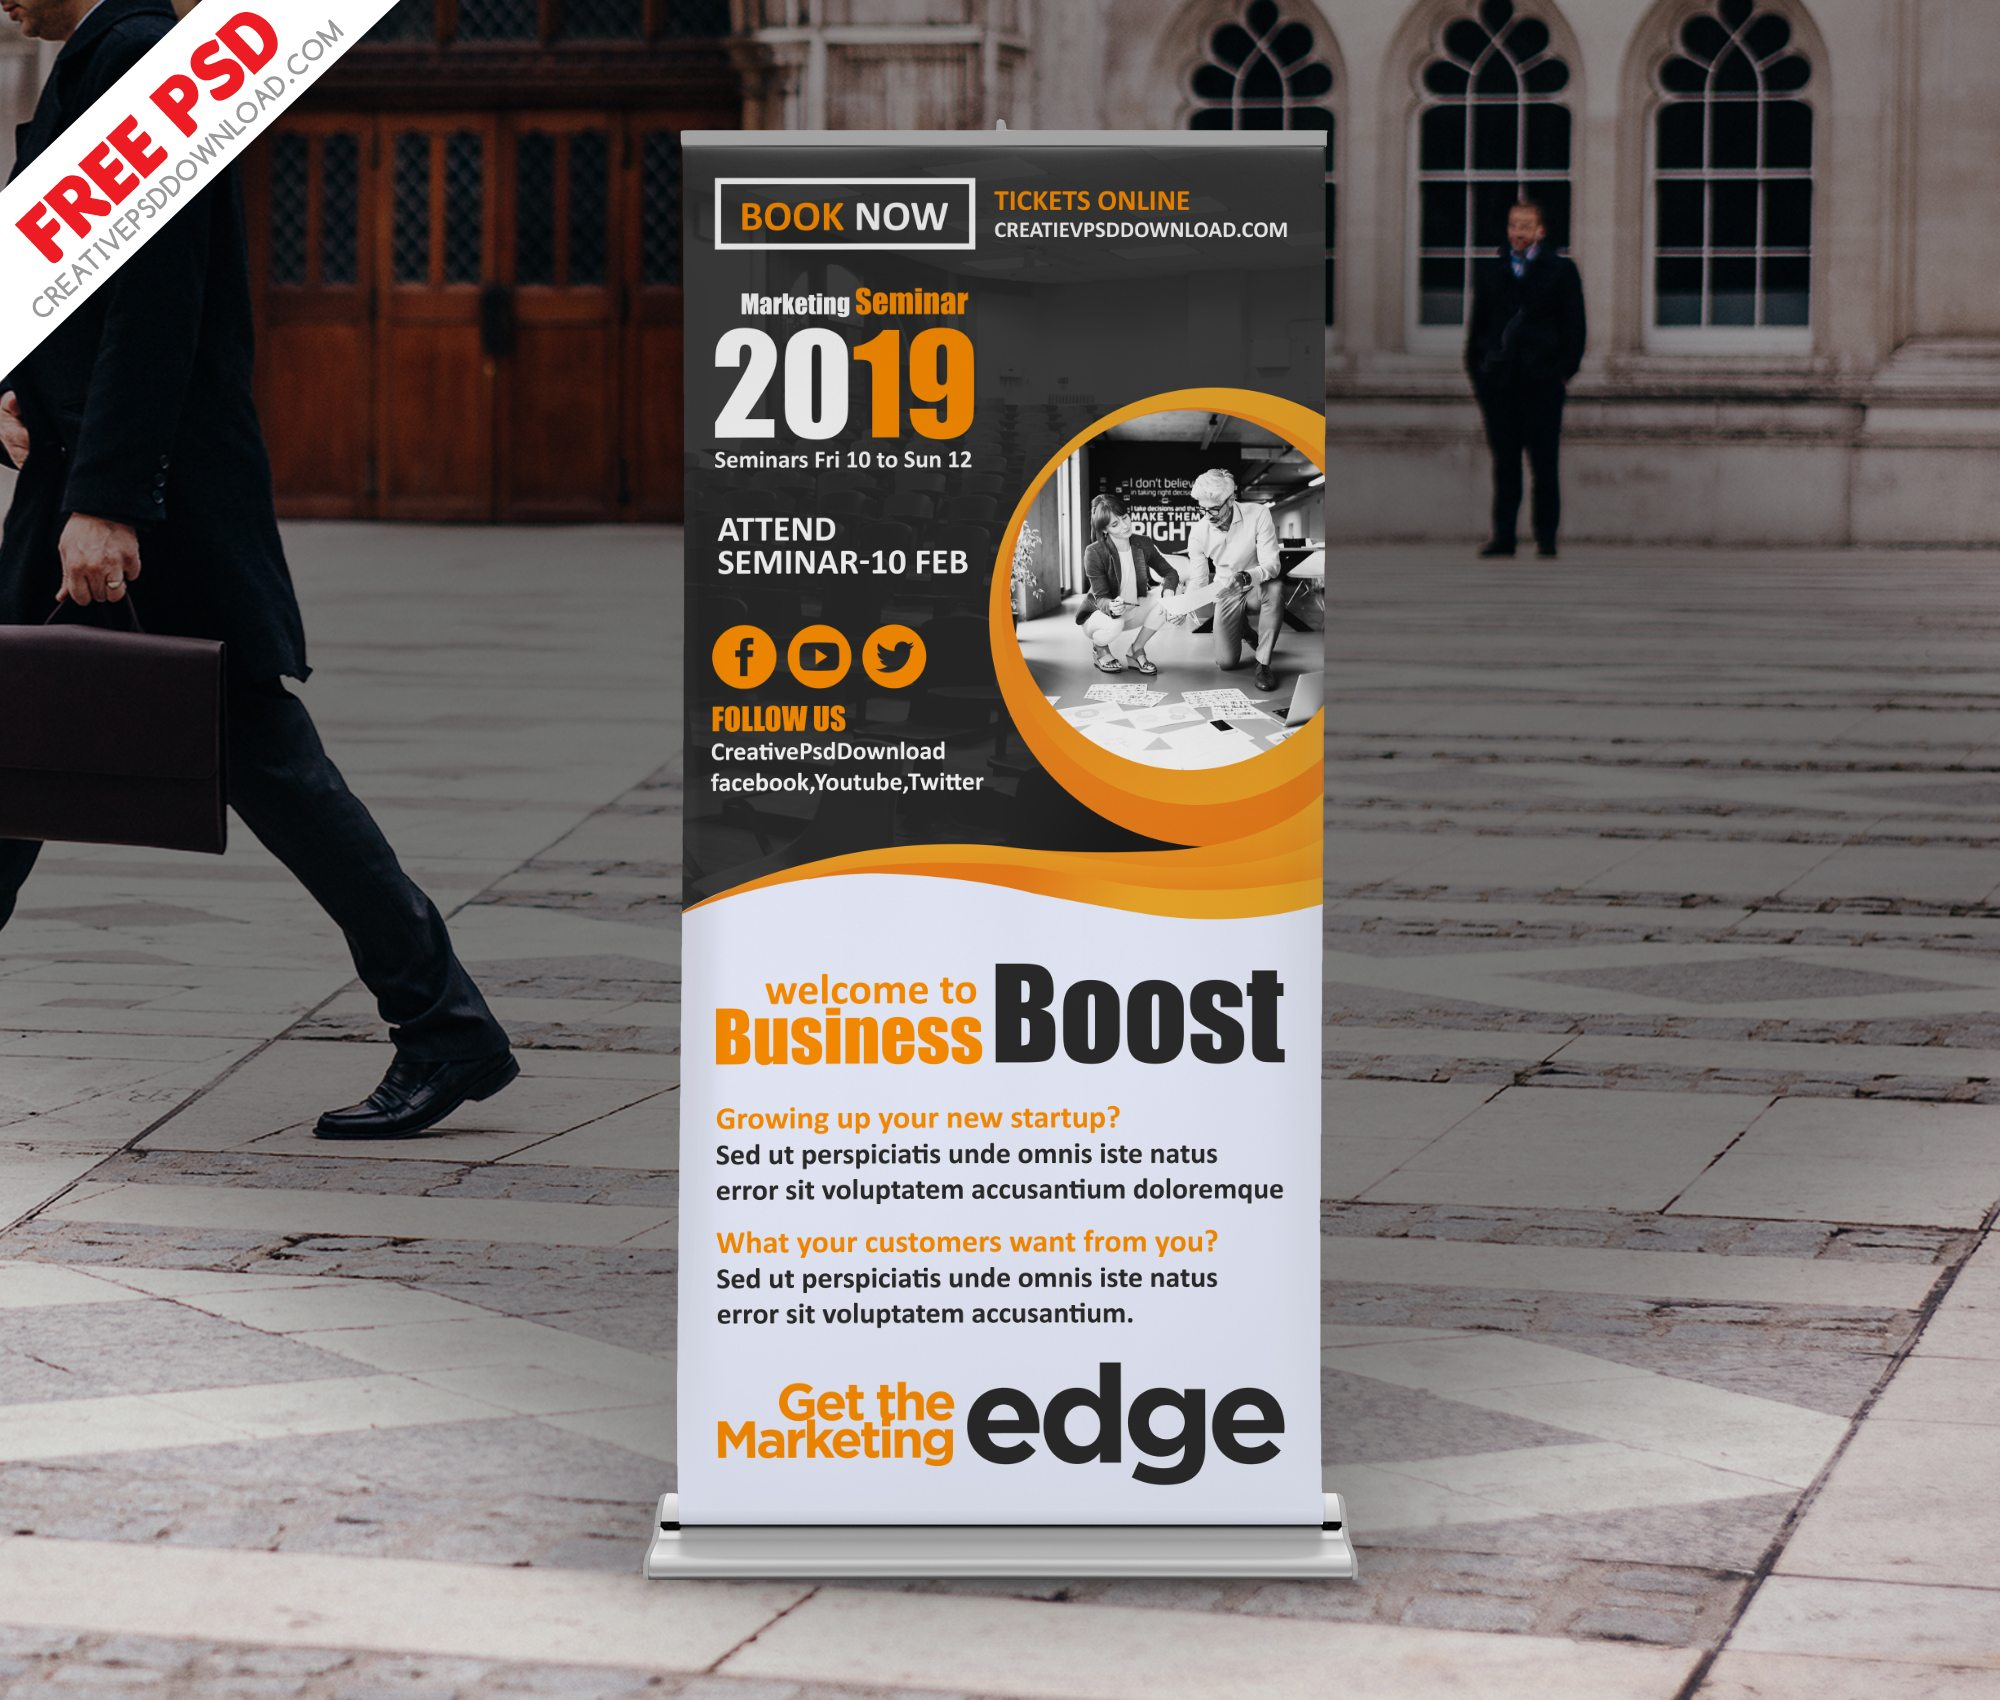 Corporate Seminar Roll-up Banner PSD Freebie